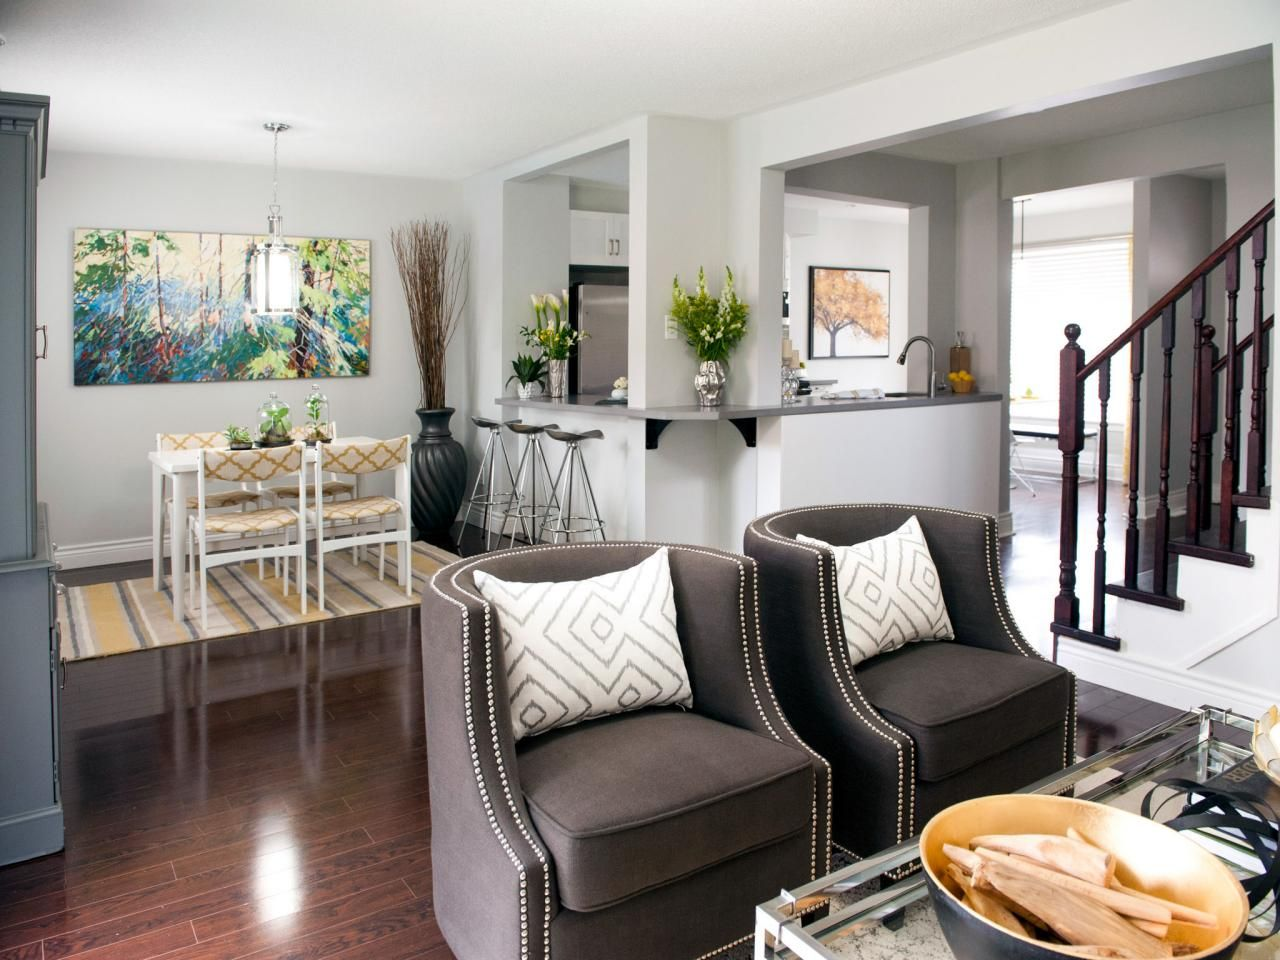 Colorful Home Makeovers From Property Brothers Buying Selling Property Brothers Drew And Jonathan Scott Decoracao De Casa Sala E Cozinha Integradas Casas